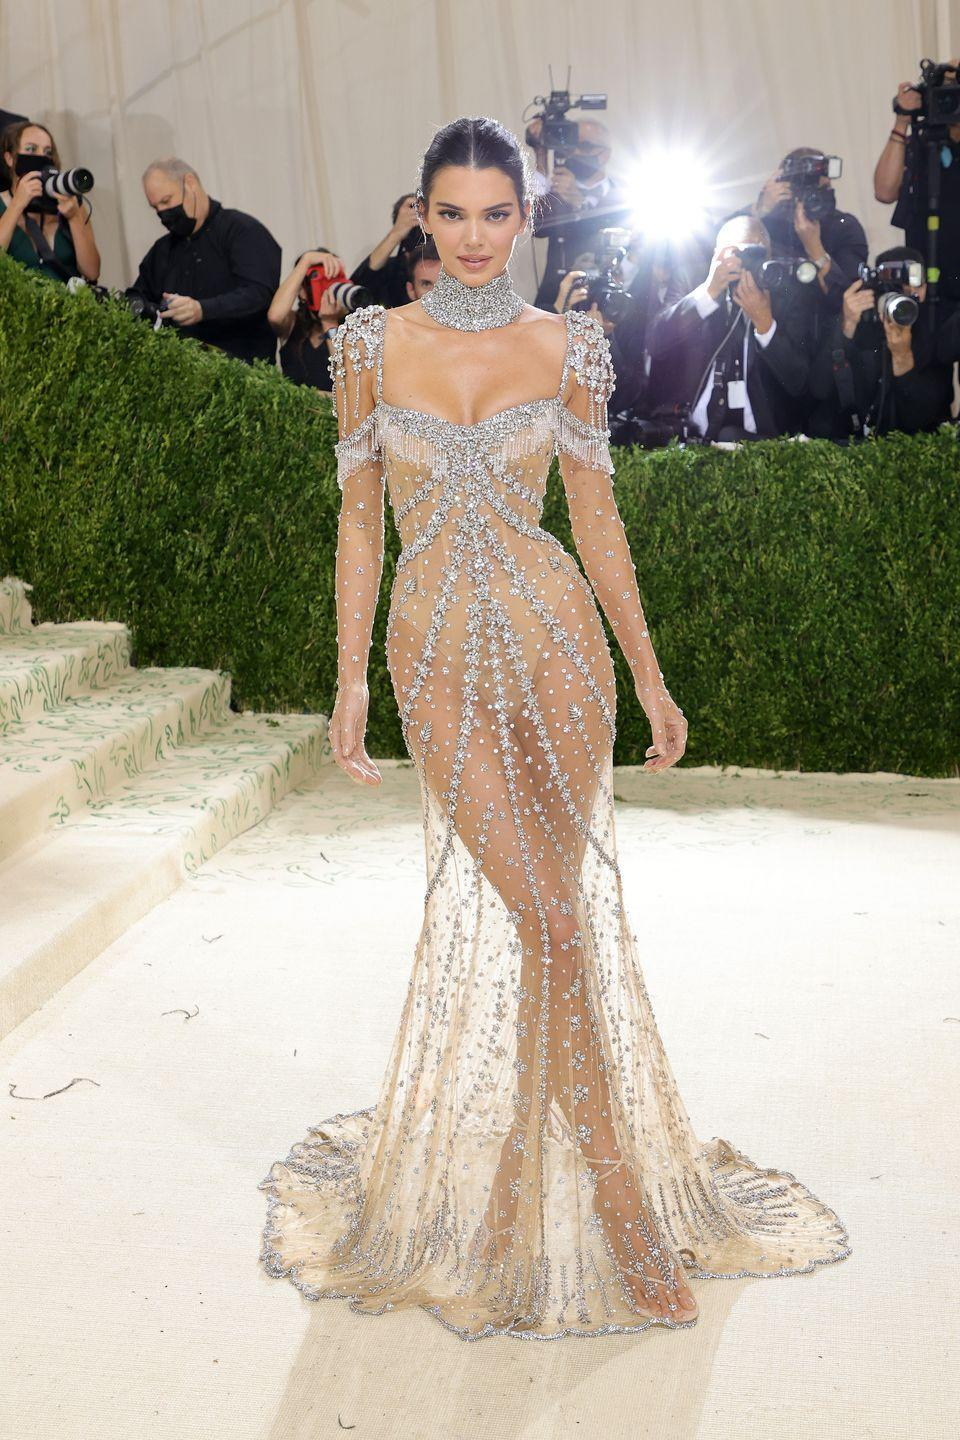 <p>The model and reality star looked amazing in a sheer, beaded gown that resembled something Cher might have worn in the '80s. Our only quibble with the otherwise gorgeous look is that her bodysuit isn't a particularly good match to her skin and it's a little too obvious in pictures. </p>